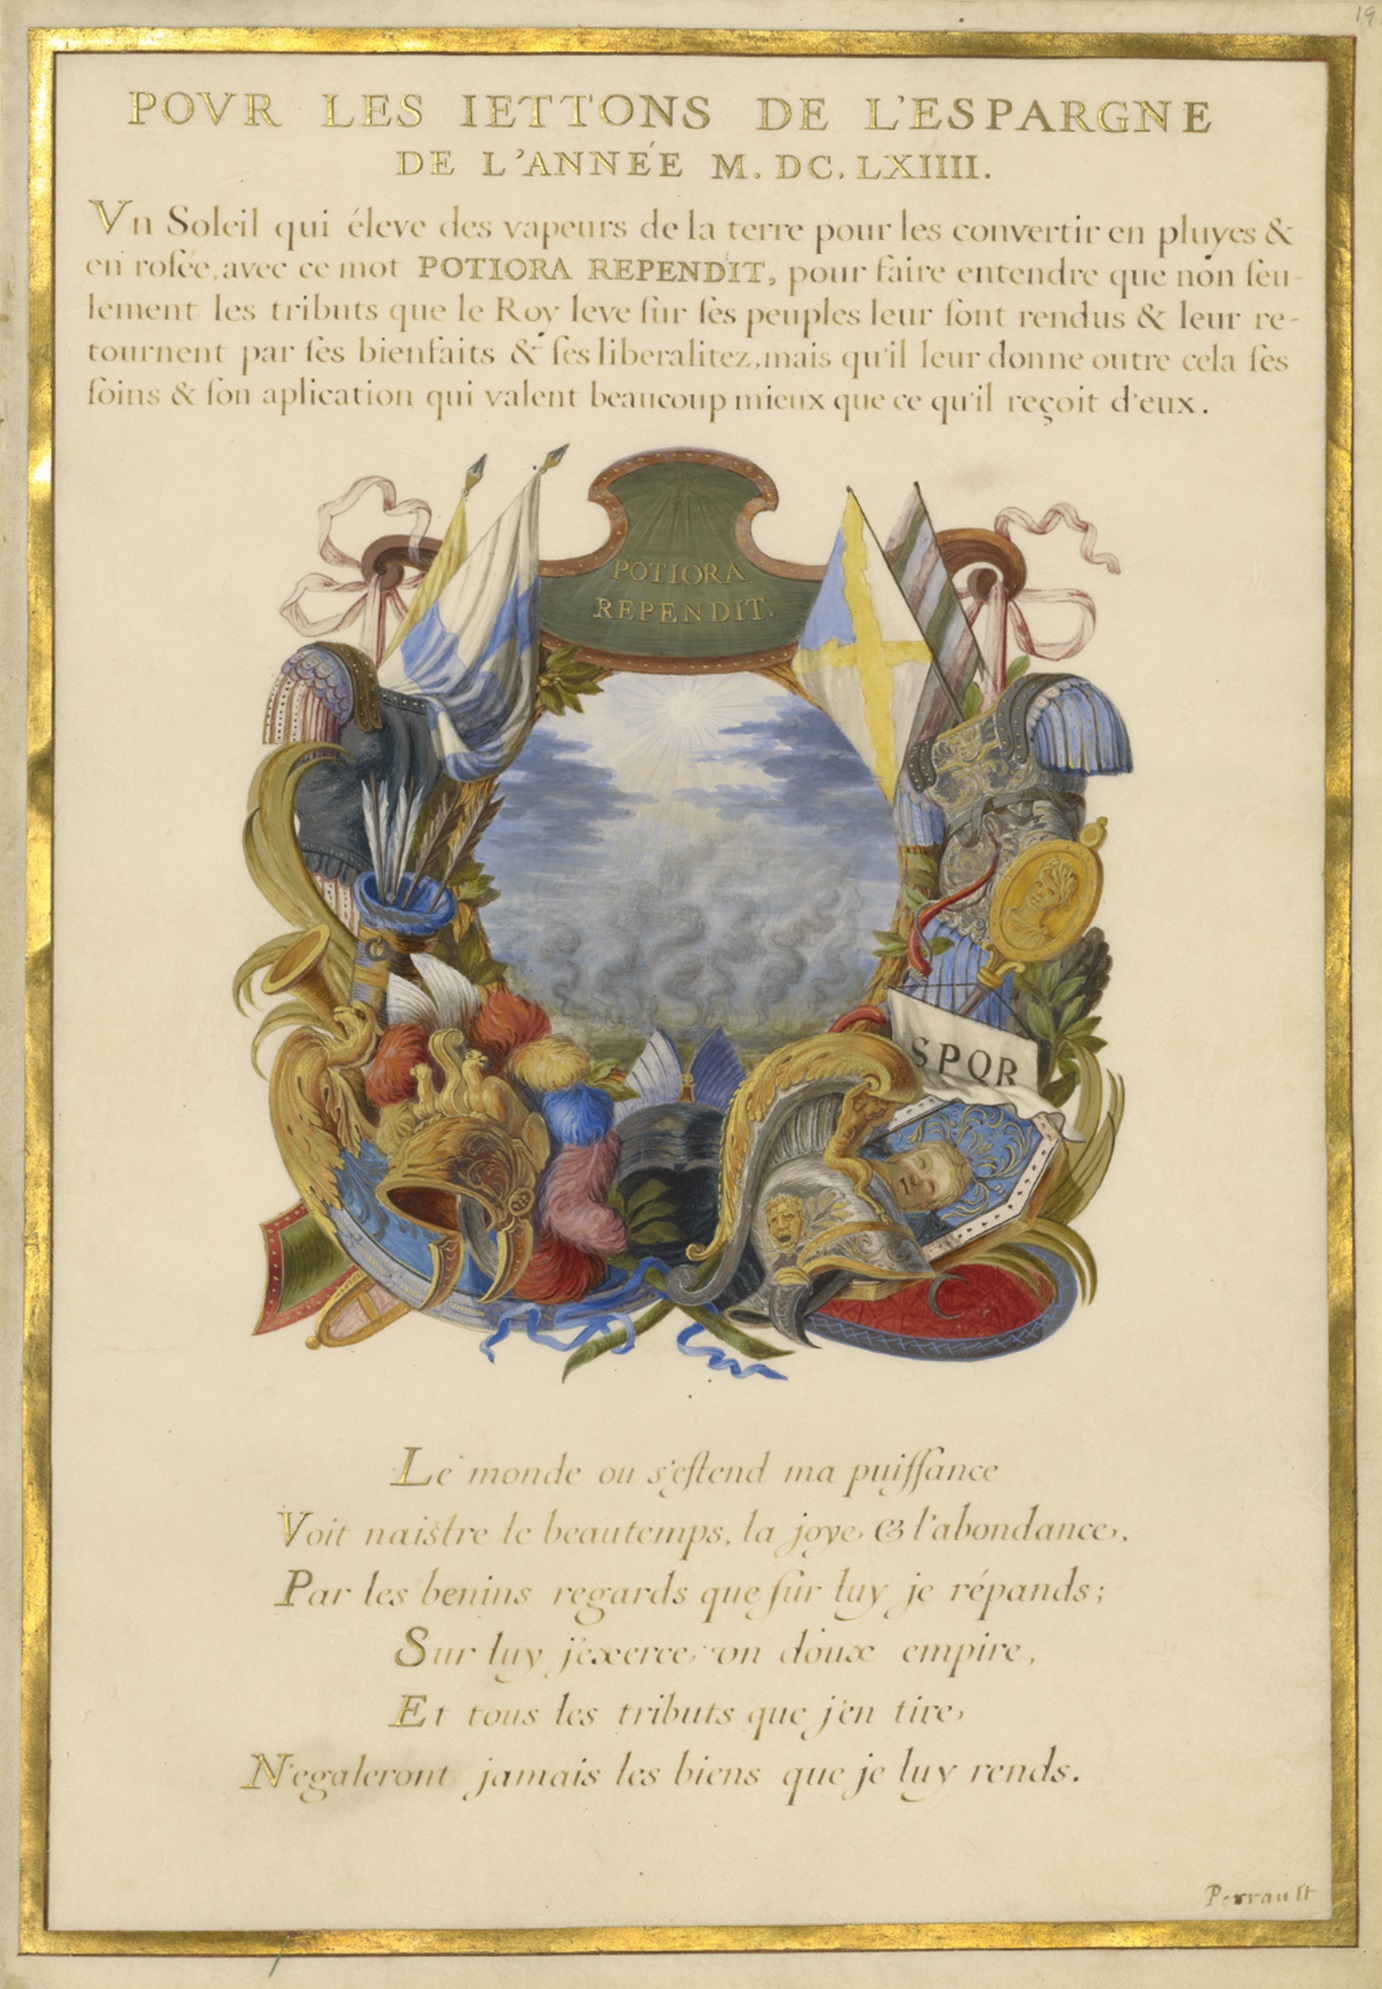 Escutcheon with a Landscape (detail) from Emblems for Louis XIV (text in French and Latin by Charles Perrault), Jacques Bailly, about 1663-1668. The J. Paul Getty Museum, Ms. 11, leaf 9